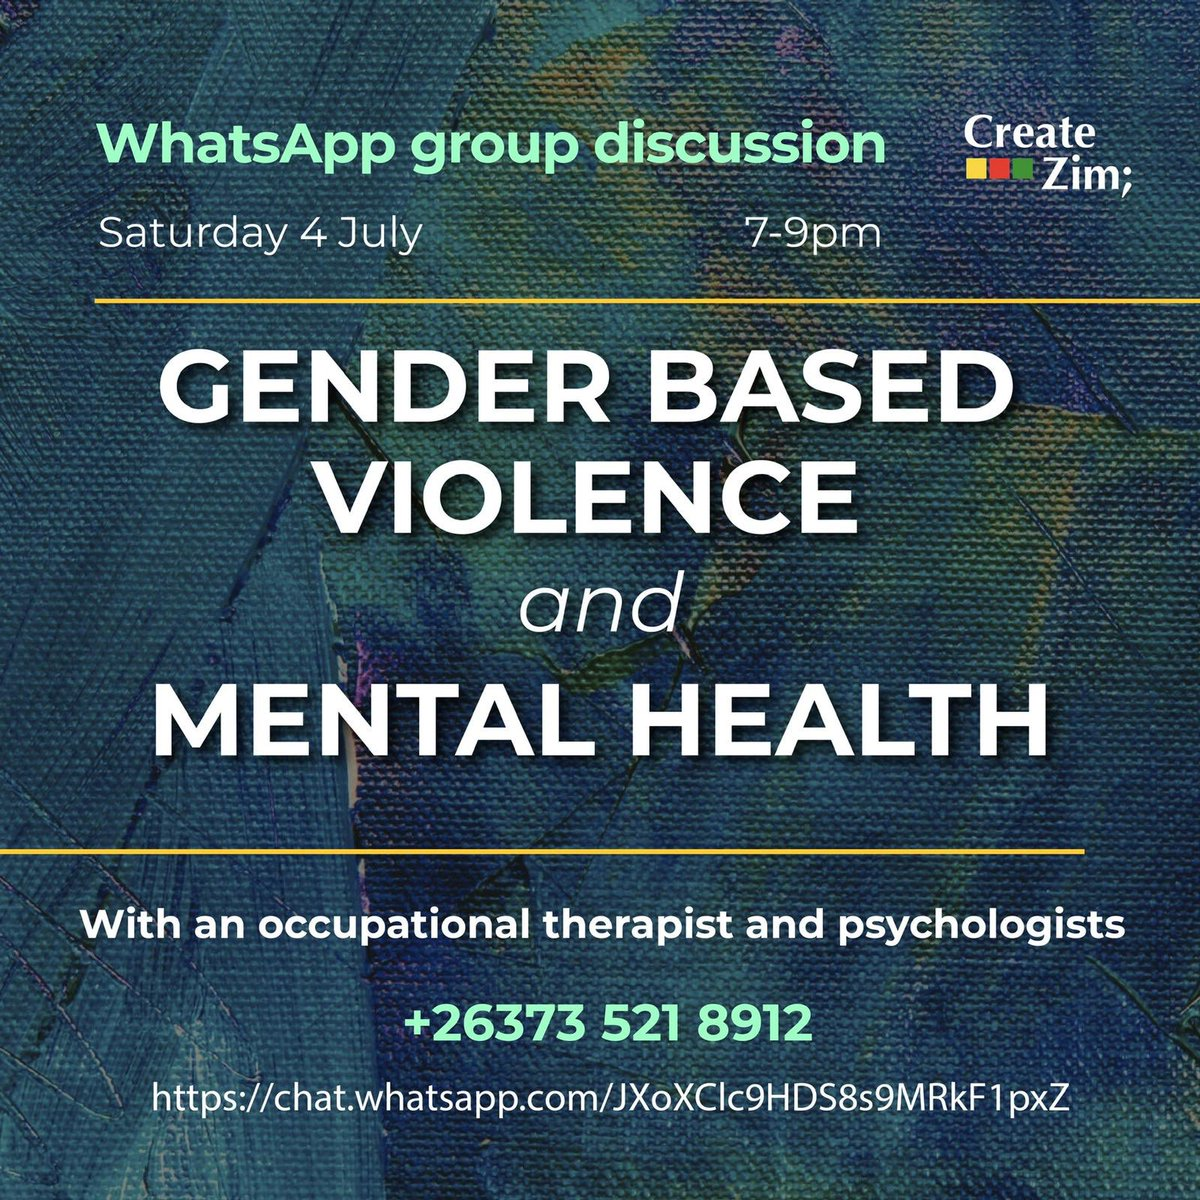 Tonight I will be hosting a WhatsApp group discussion with @CreateZim on GBV towards women & Sexual Assault & how this affects our Mental Health as Women. There'll be a therapist and psychologist present as well.   I urge both men and women to join the discussion🙏🏾 https://t.co/0P6Th3ZPMZ